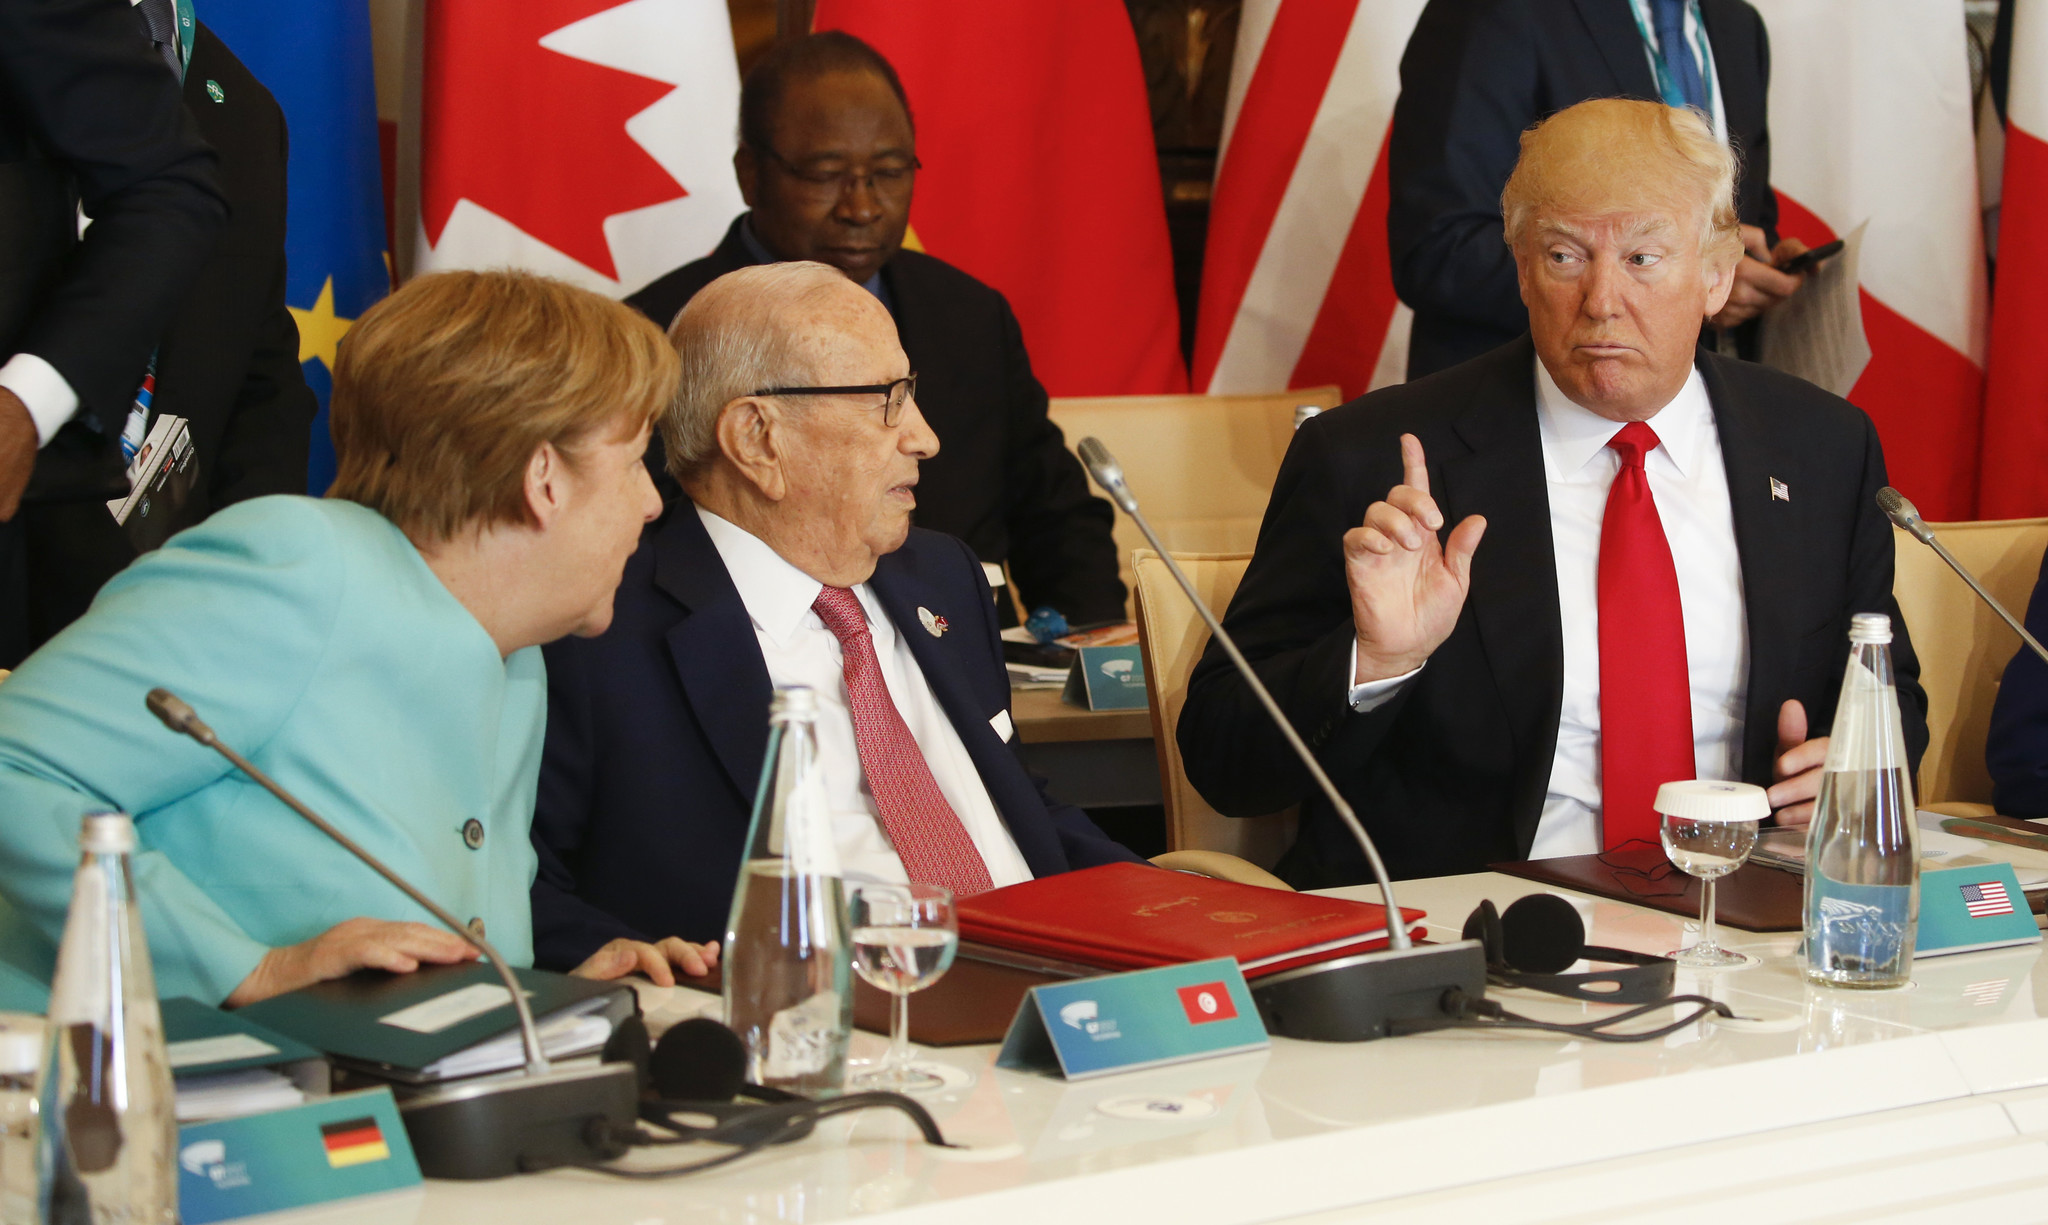 President Trump talks to German Chancellor Angela Merkel and Tunisian President Beji Caid Essebsi at a G-7 summit expanded session in Taormina, Italy, on May 27. (Associated Press)